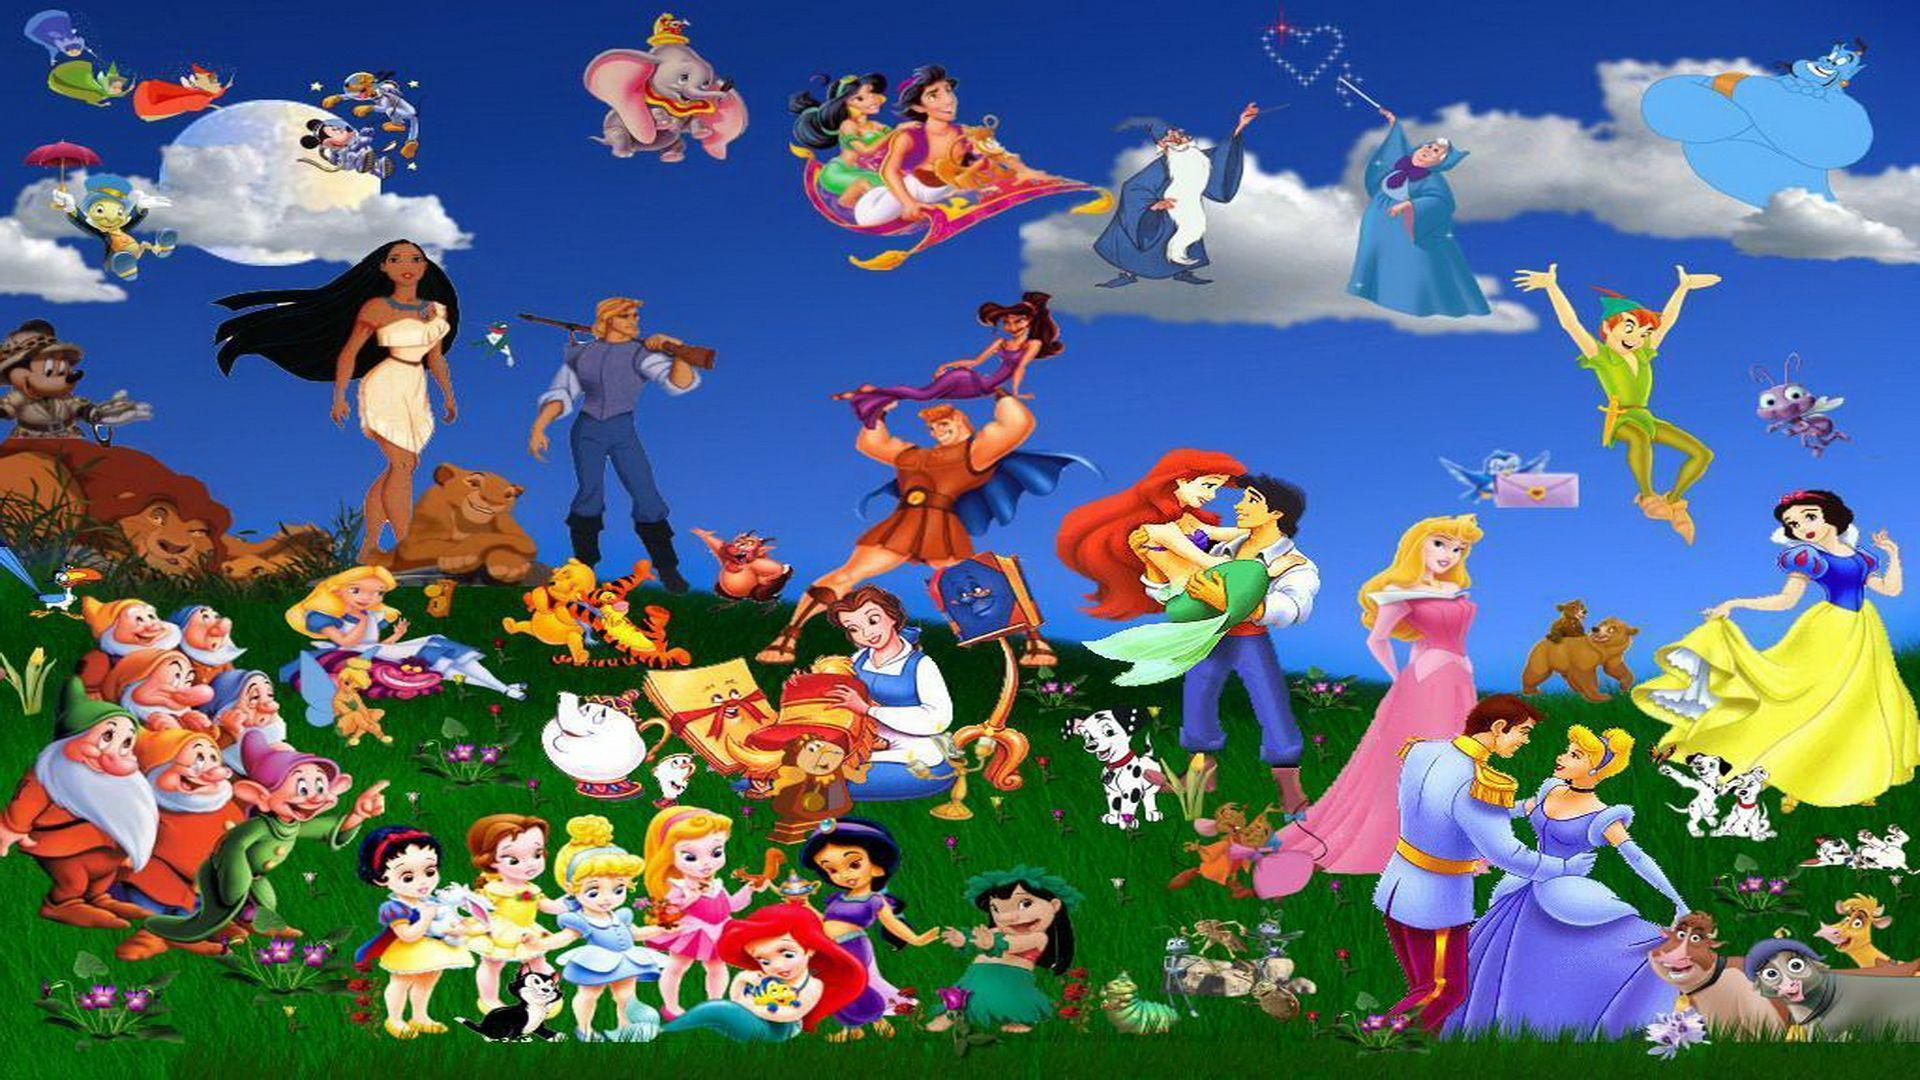 Disney Movies Wallpapers - Wallpaper Cave